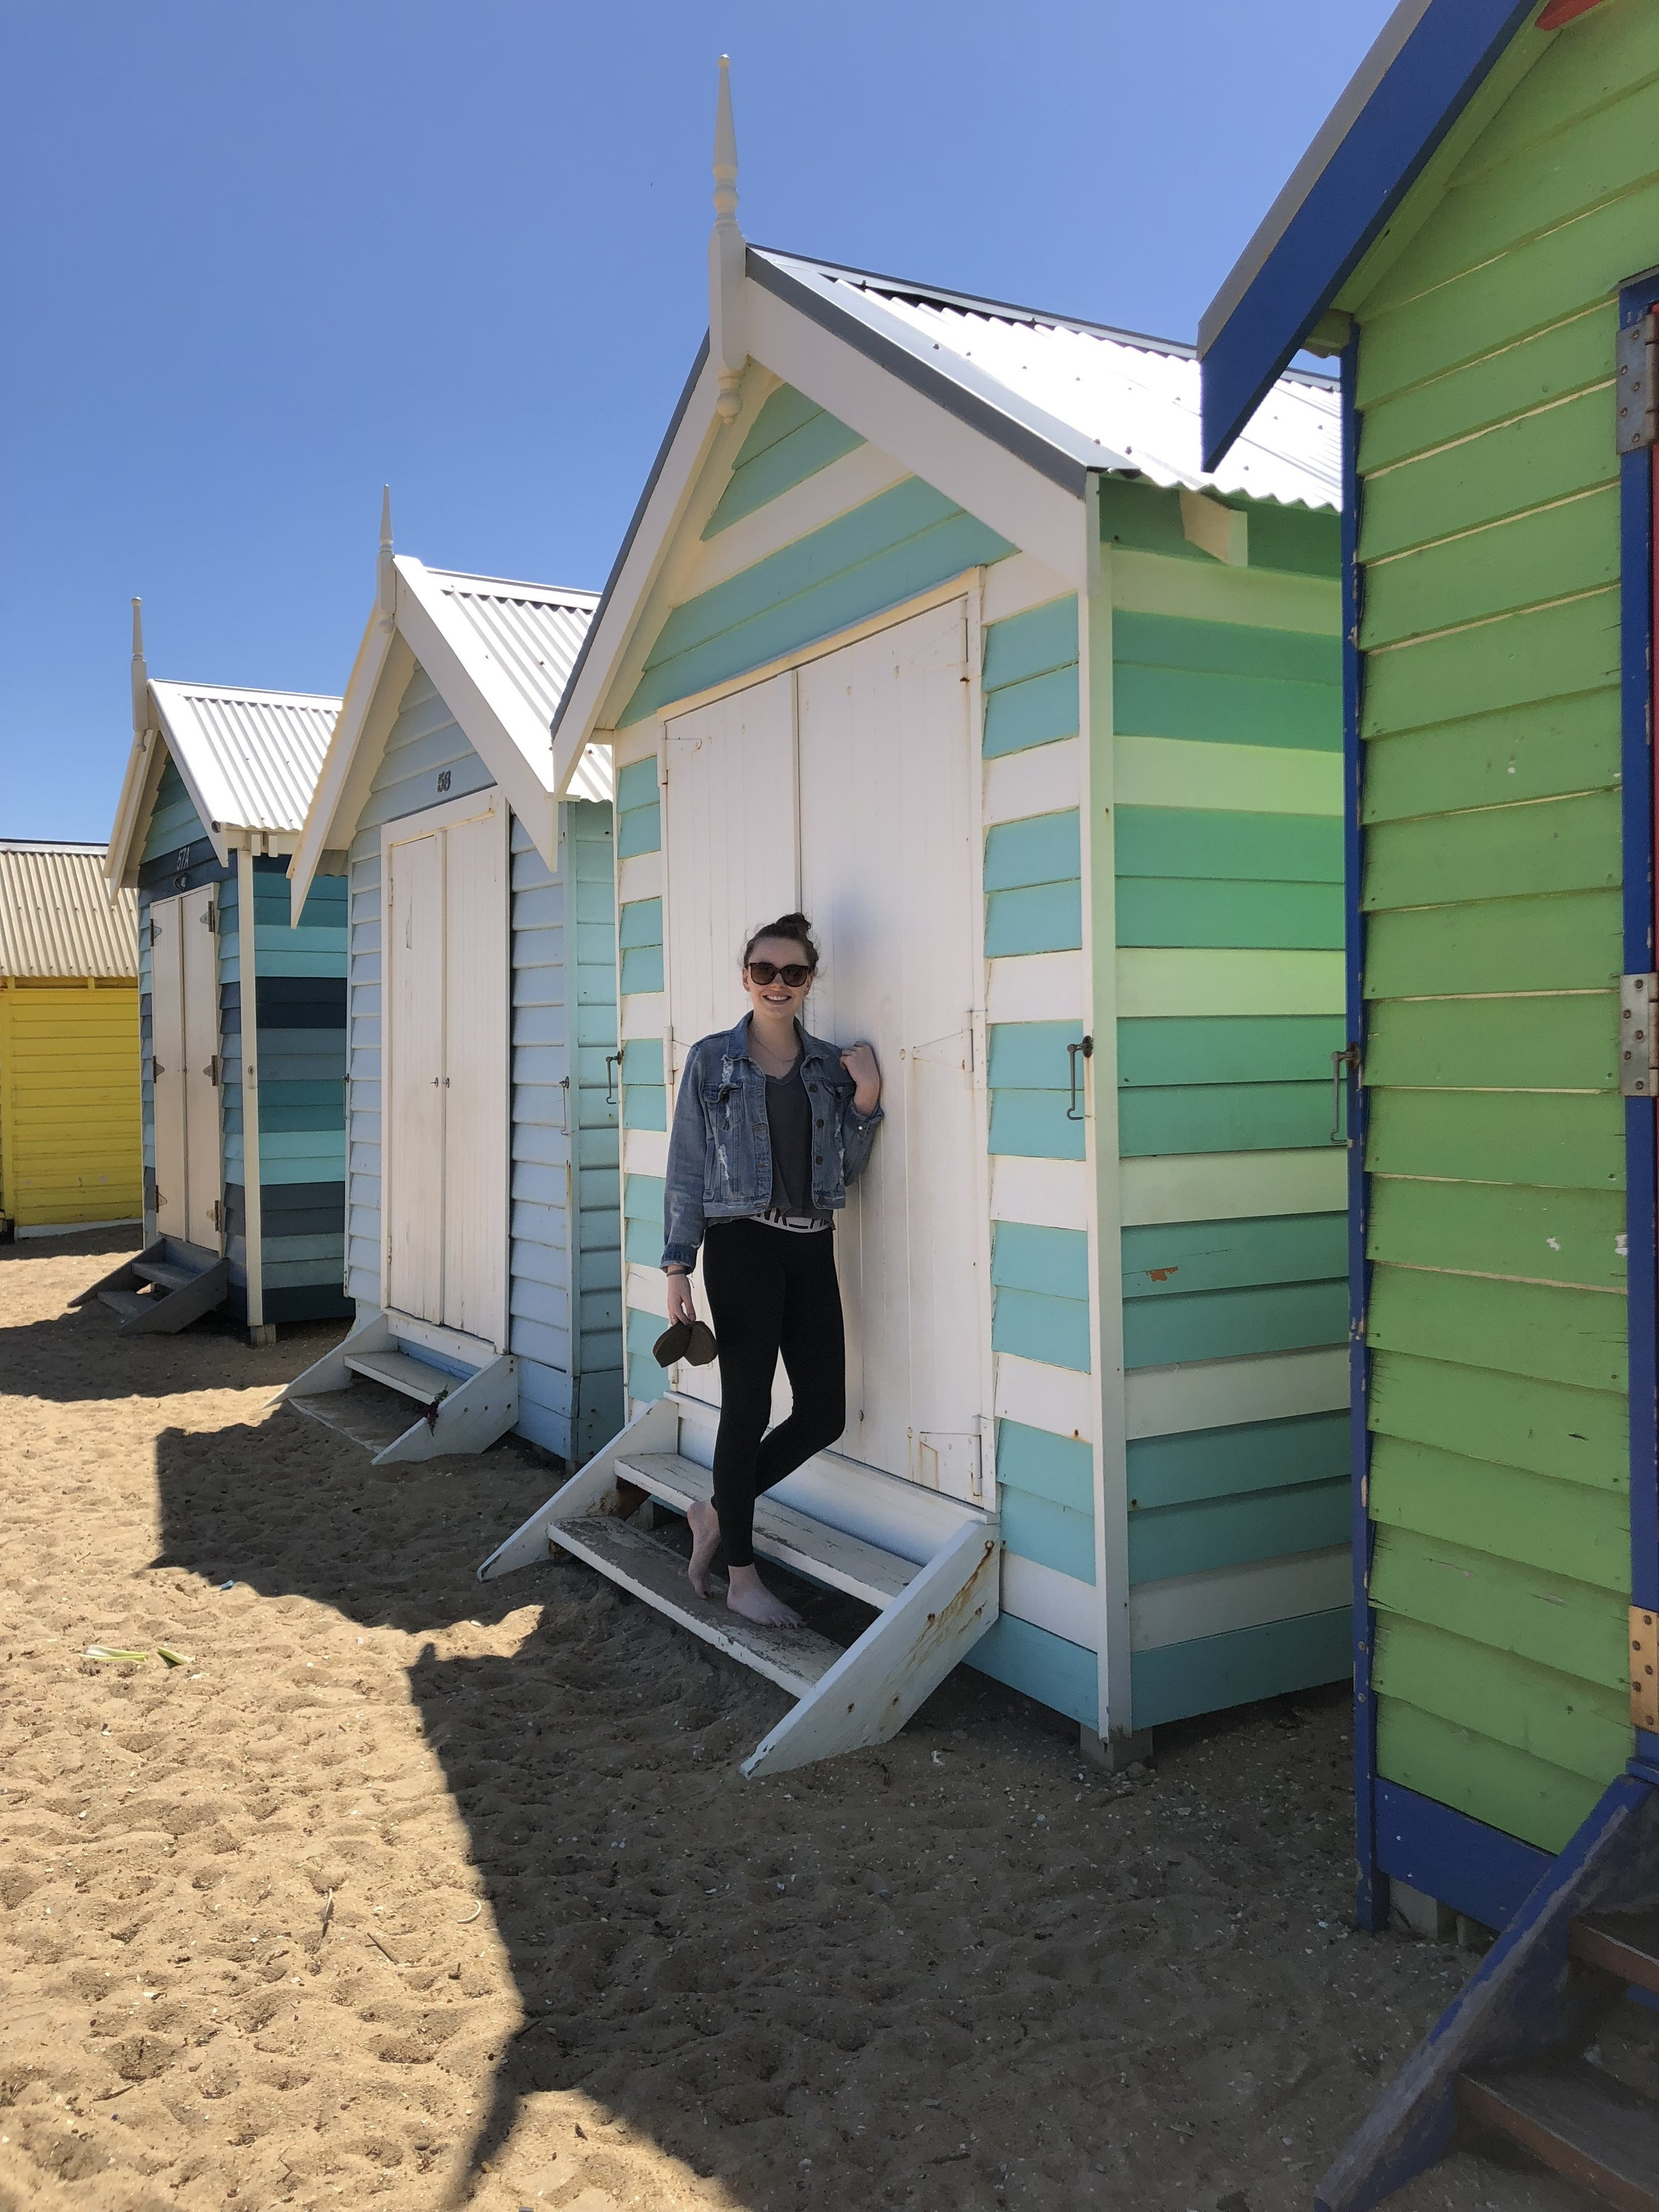 Visiting the famous Brighton Bathing Houses in Melbourne, Australia.